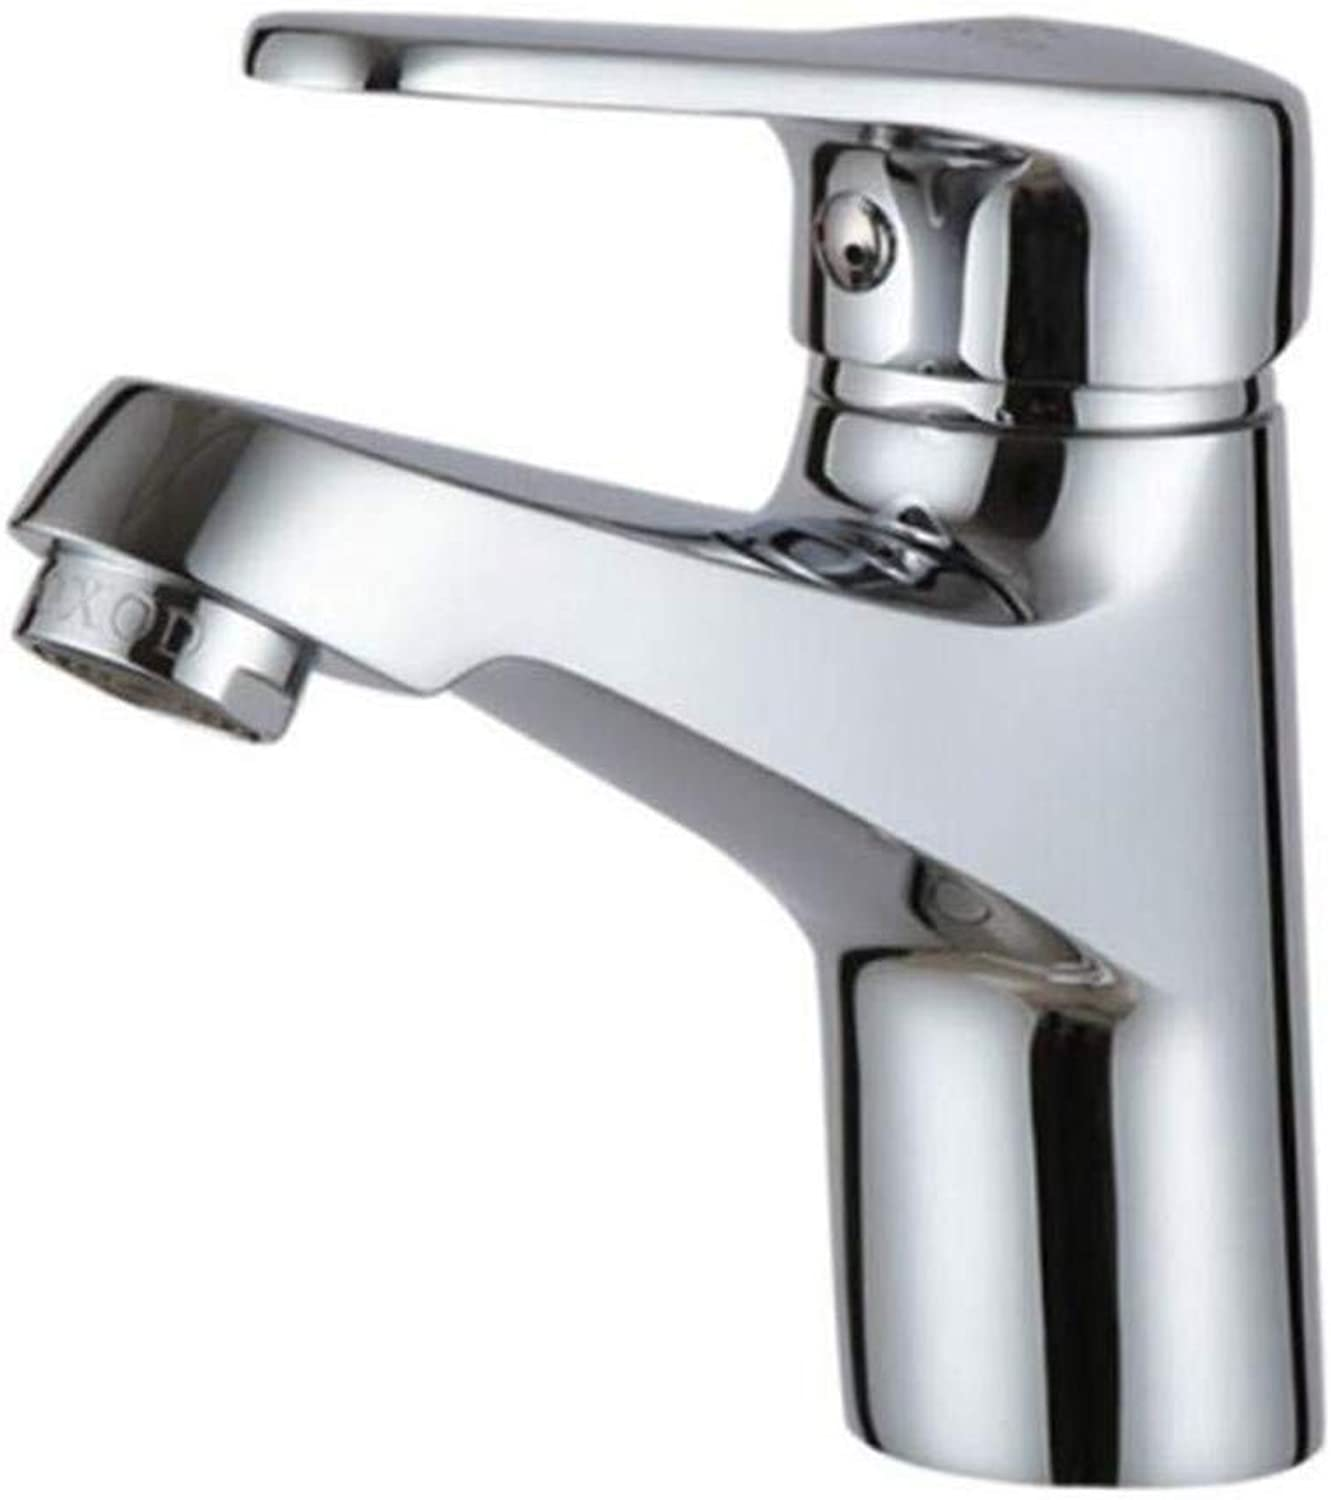 Kitchen Bath Basin Sink Bathroom Taps Kitchen Sink Taps Bathroom Taps Water Faucet Cold and Hot Water Faucet Ctzl7650